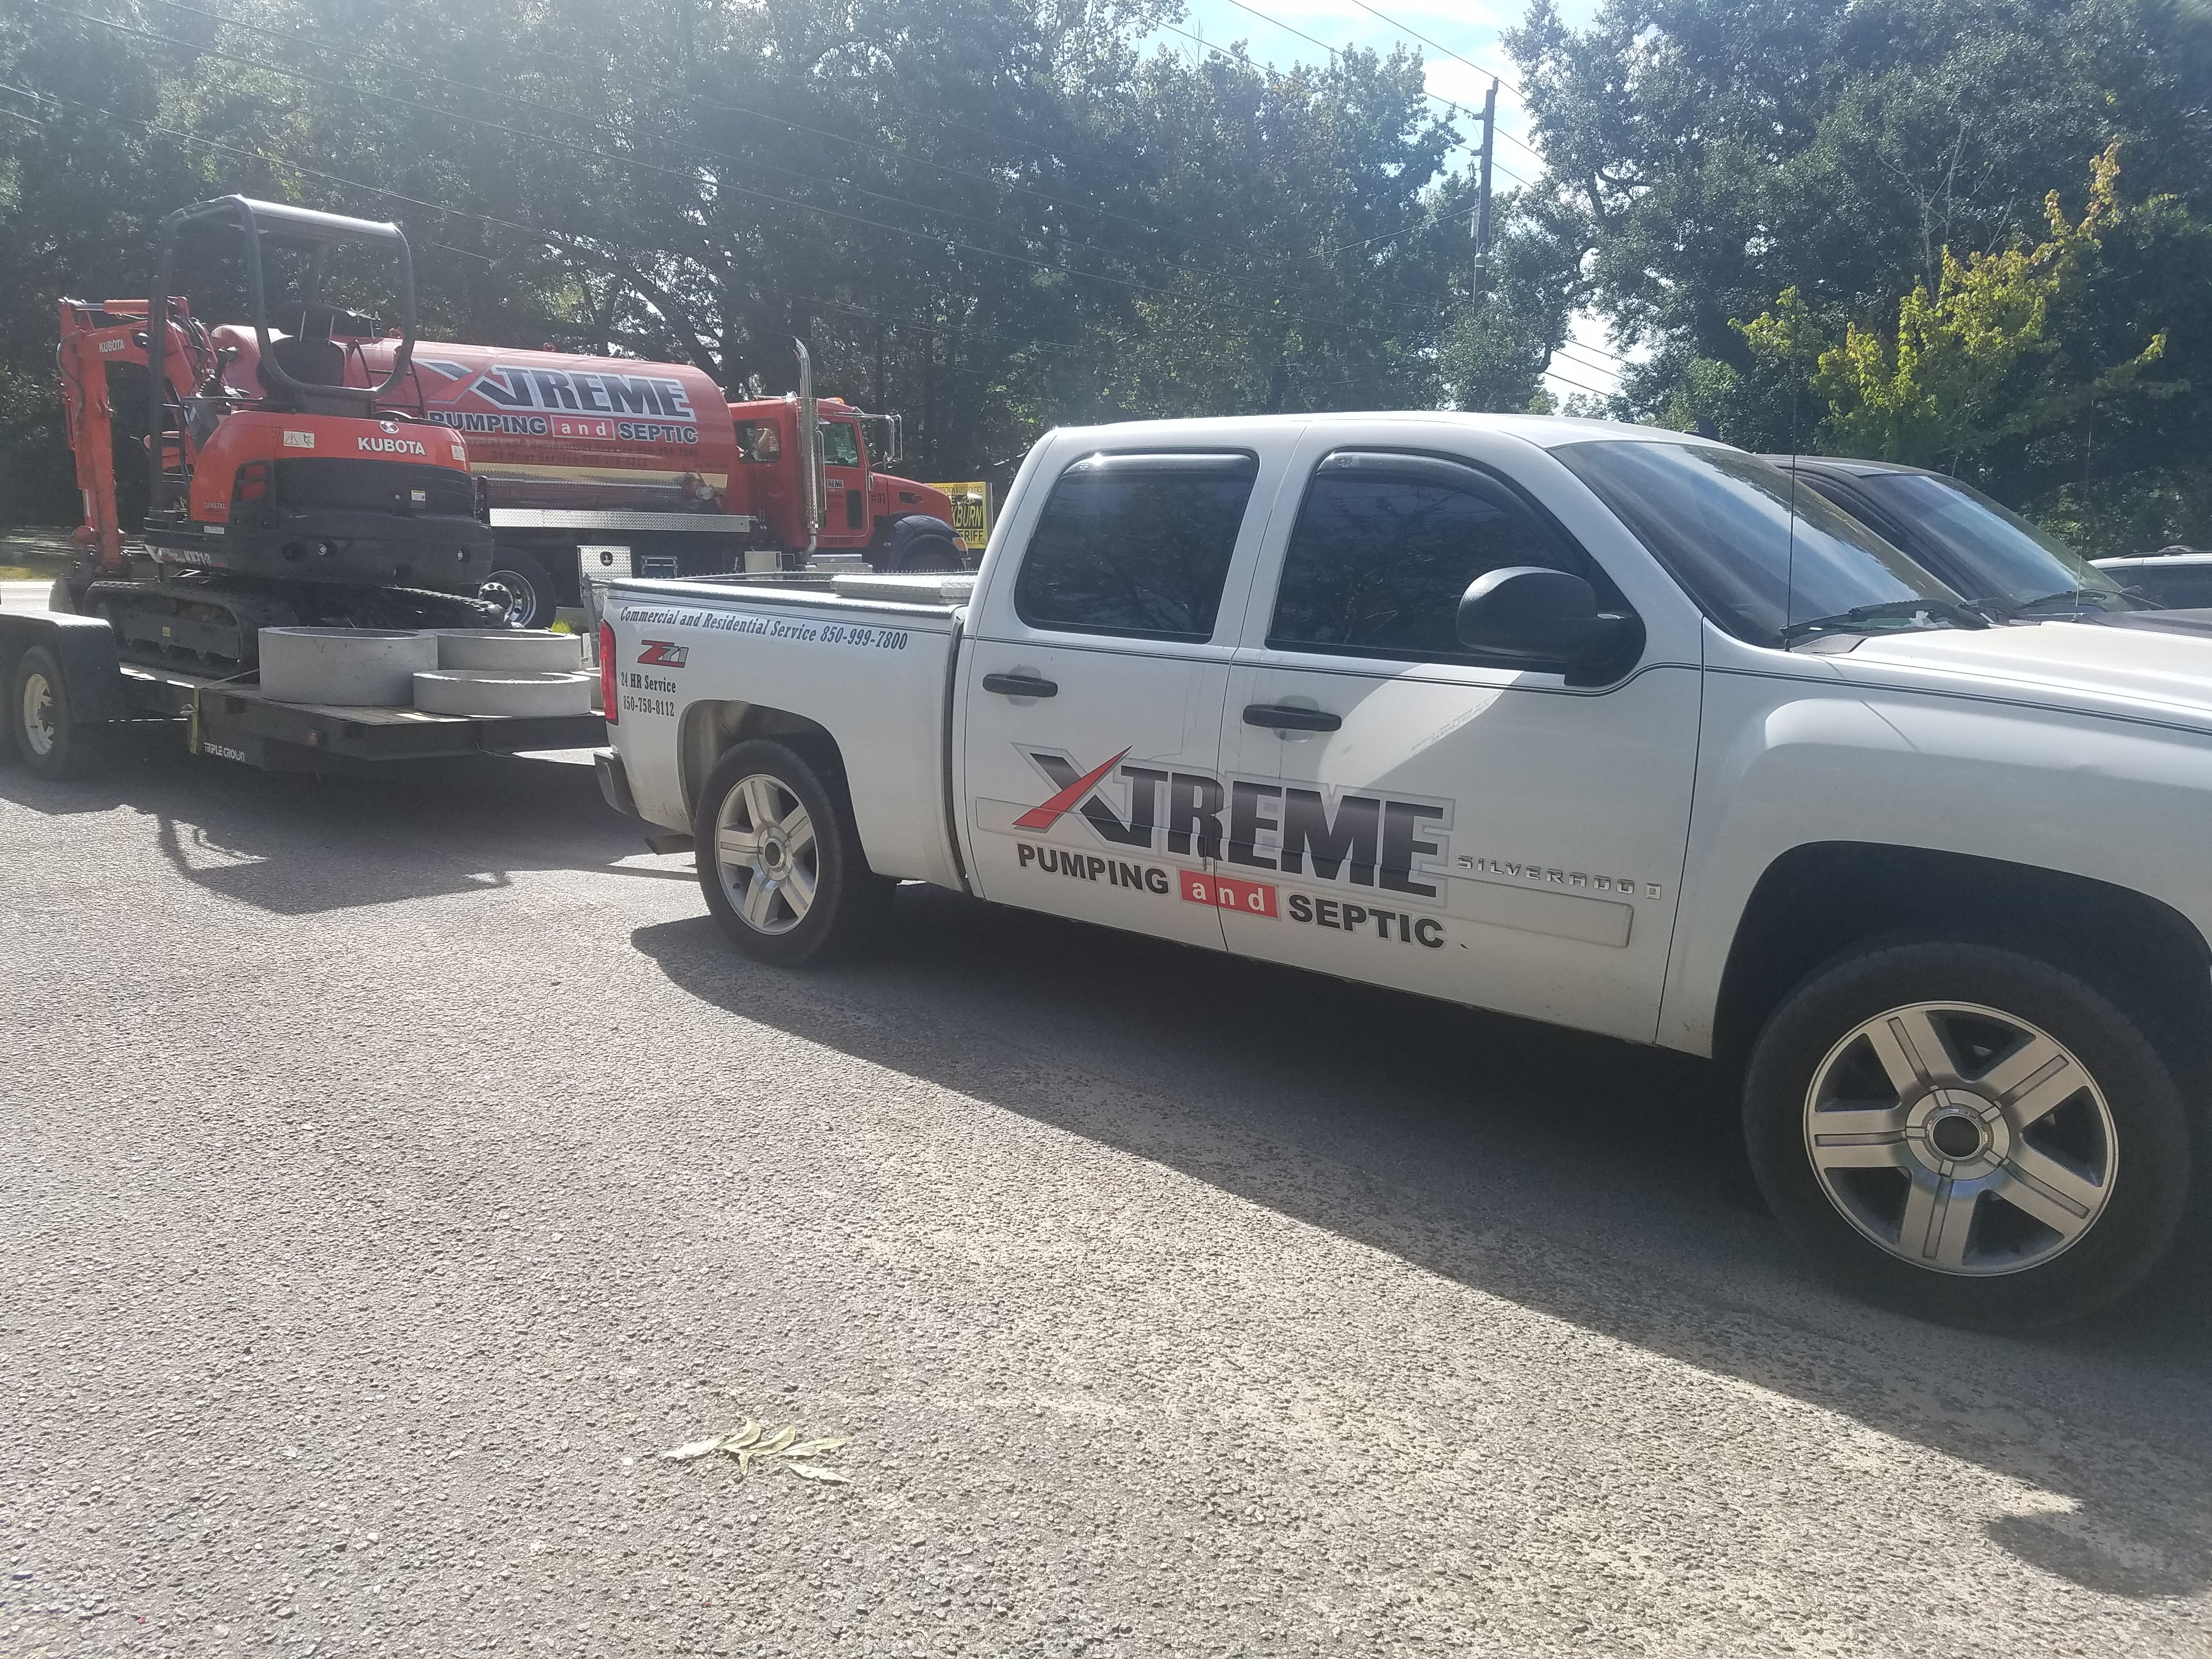 XTREME PUMPING and SEPTIC, 24/7 service, Located in Florida